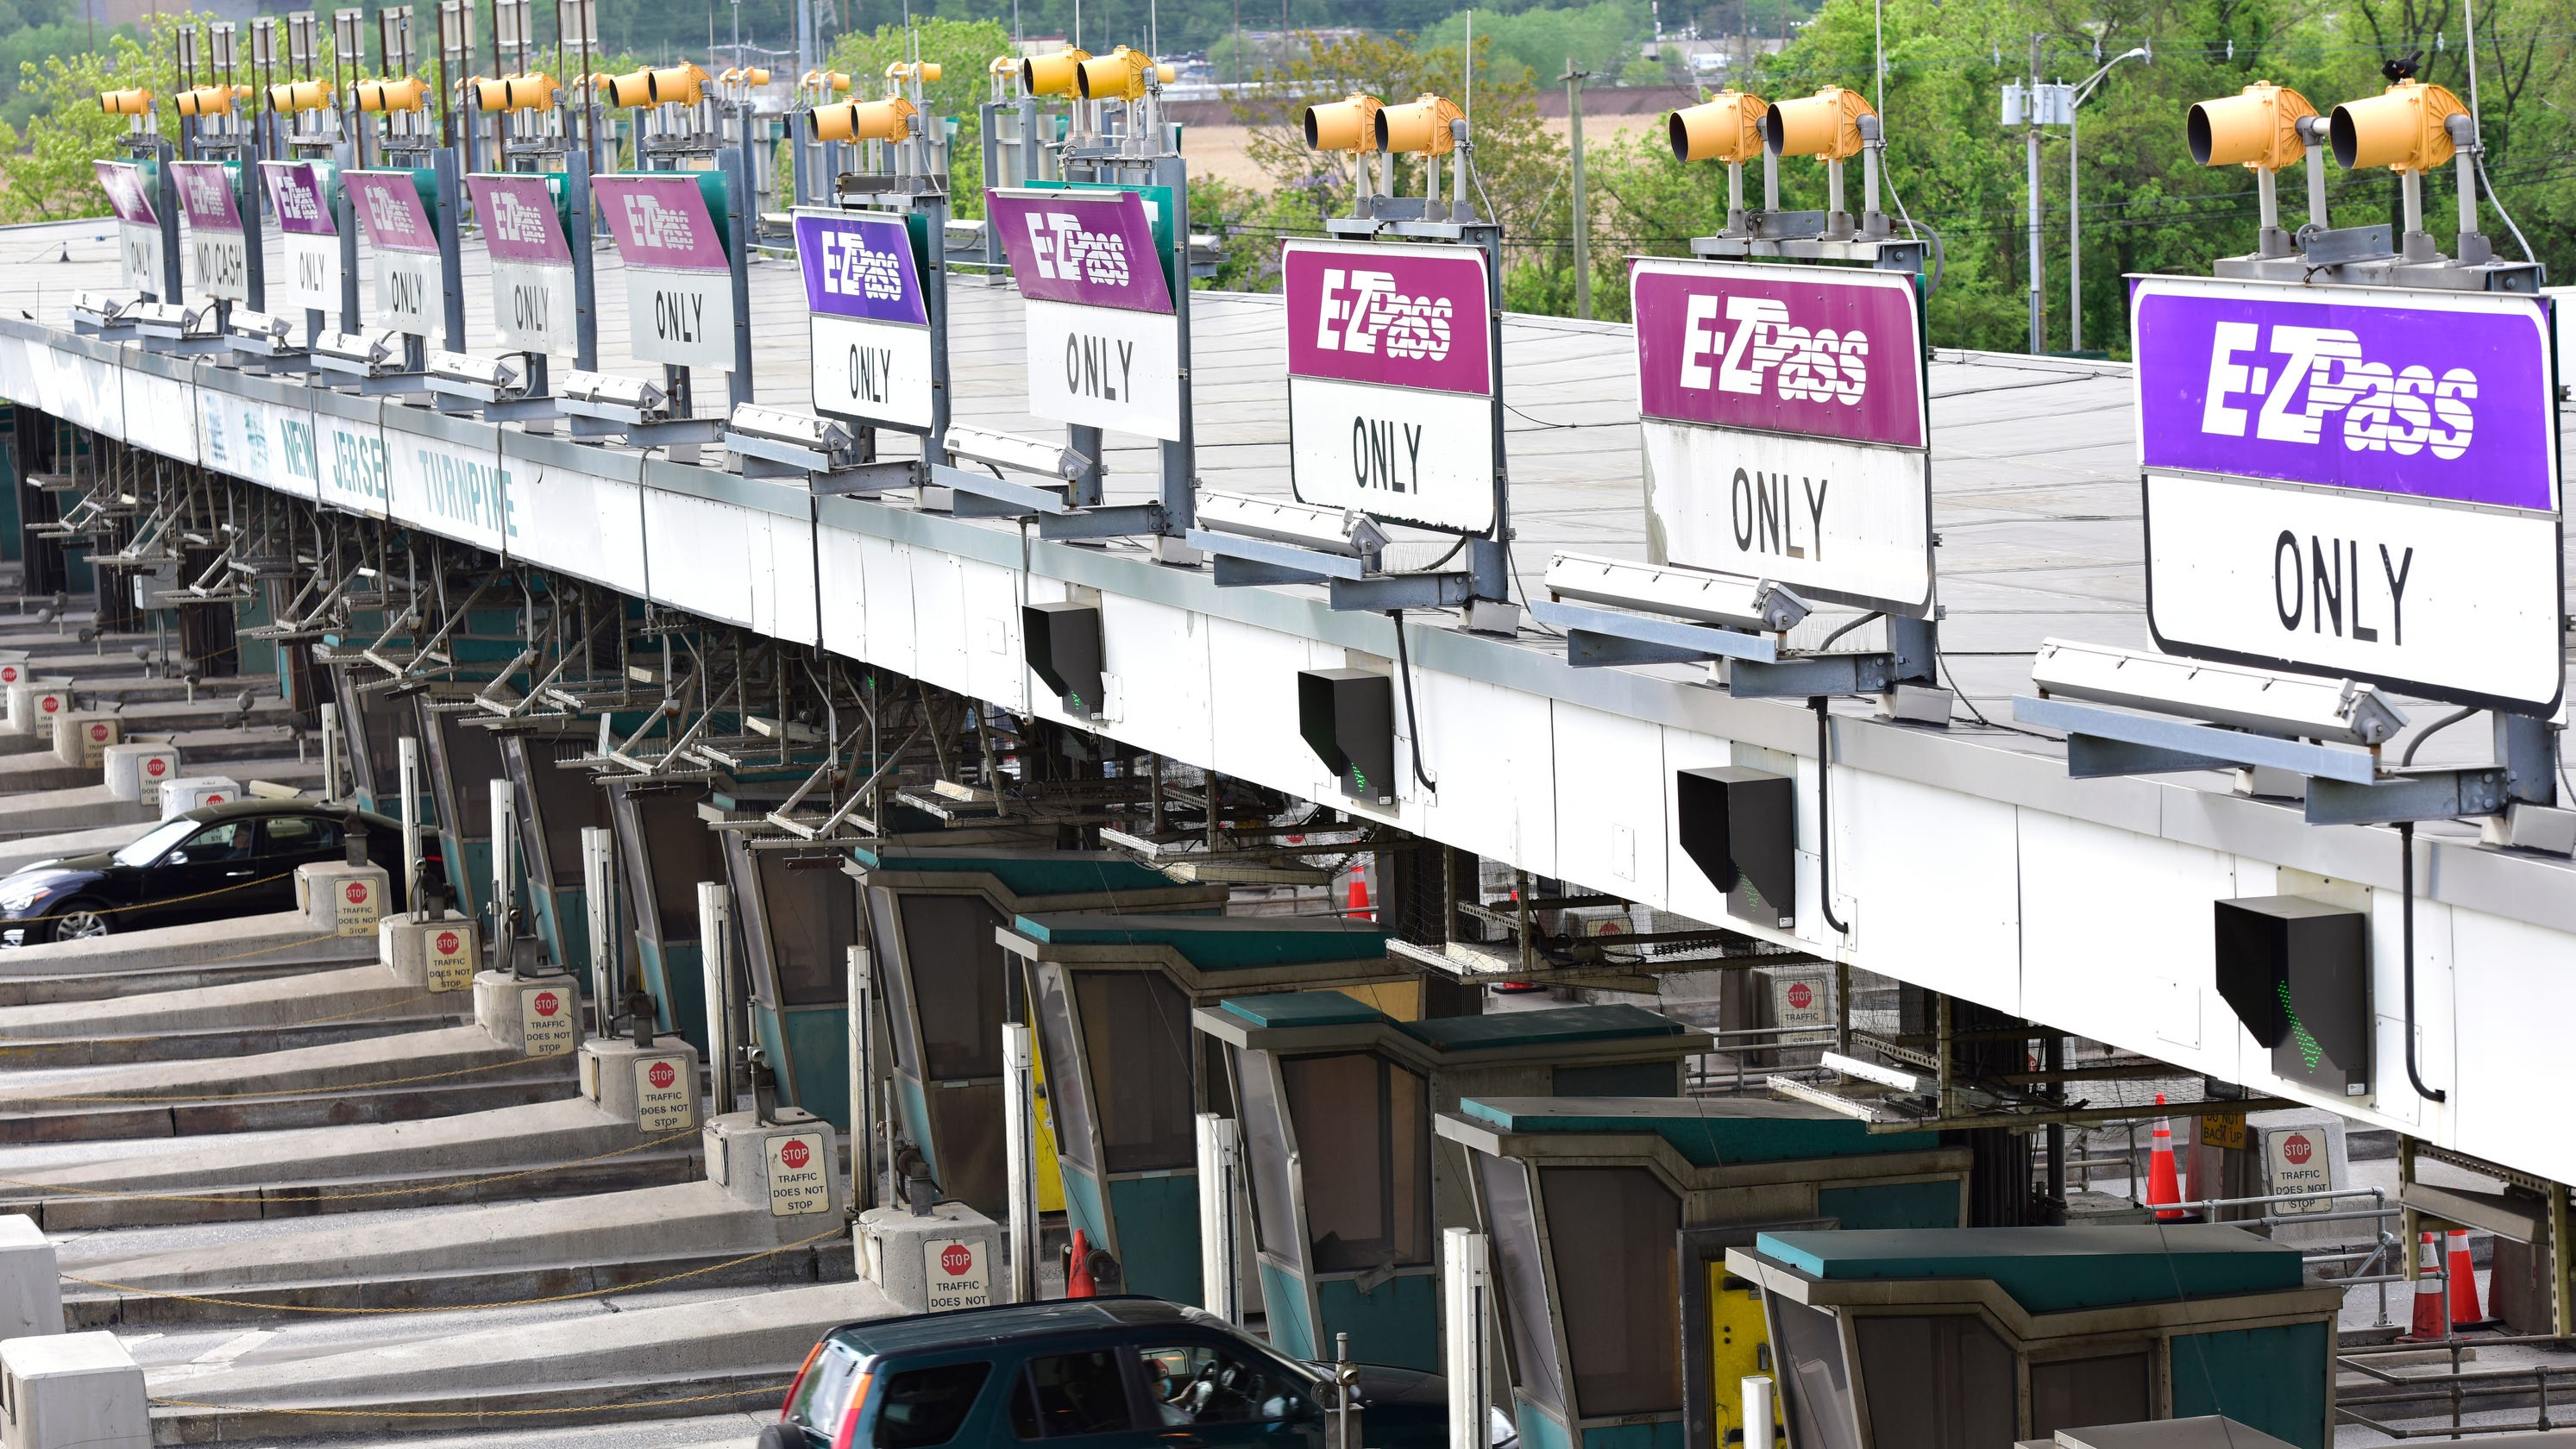 NJ Turnpike, Garden State Parkway tolls are going up: Murphy OKs toll hikes for 3 NJ highways